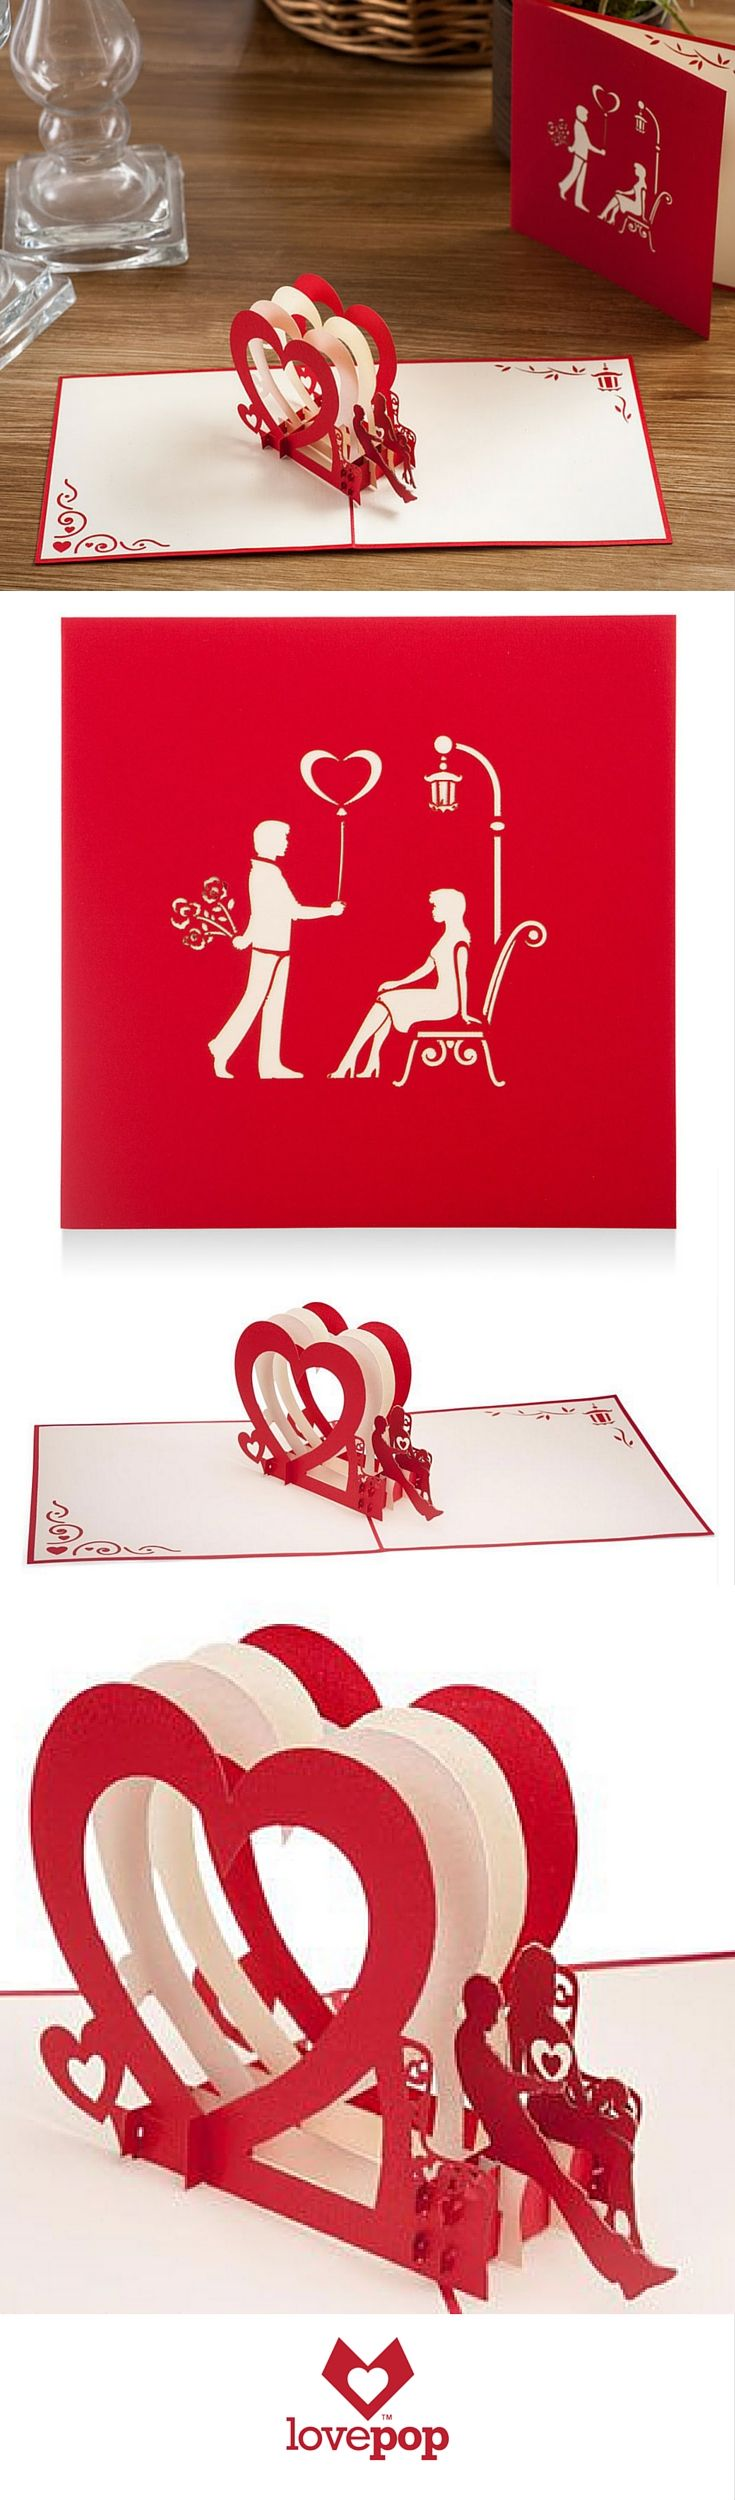 Say i love you with a unique d pop up greeting card perfect paper